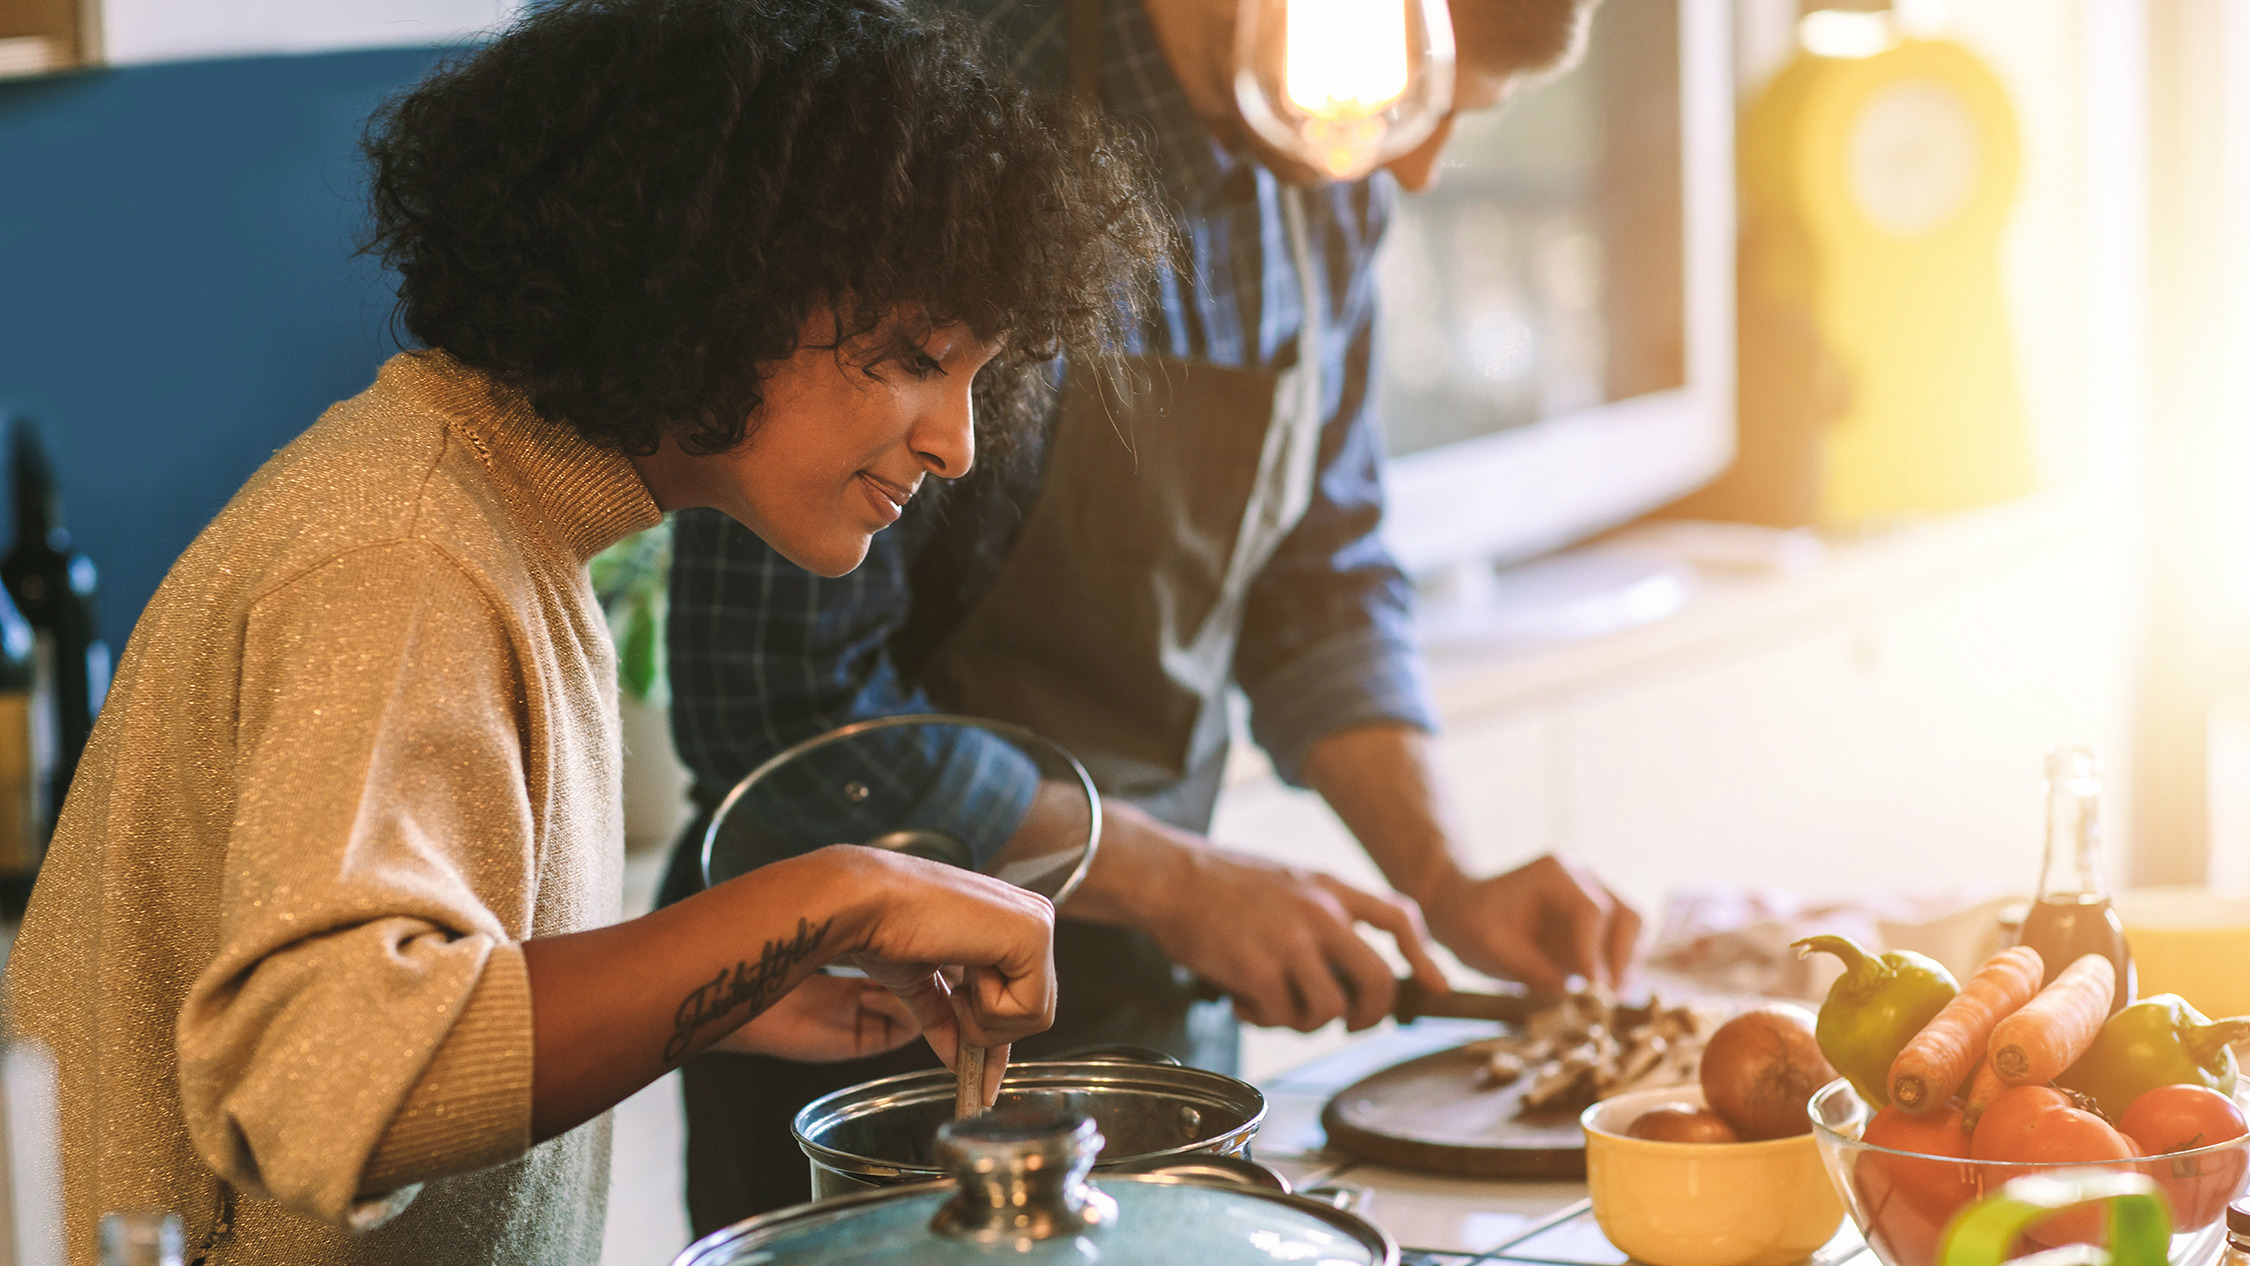 Woman and man standing over stove stirring pots of food